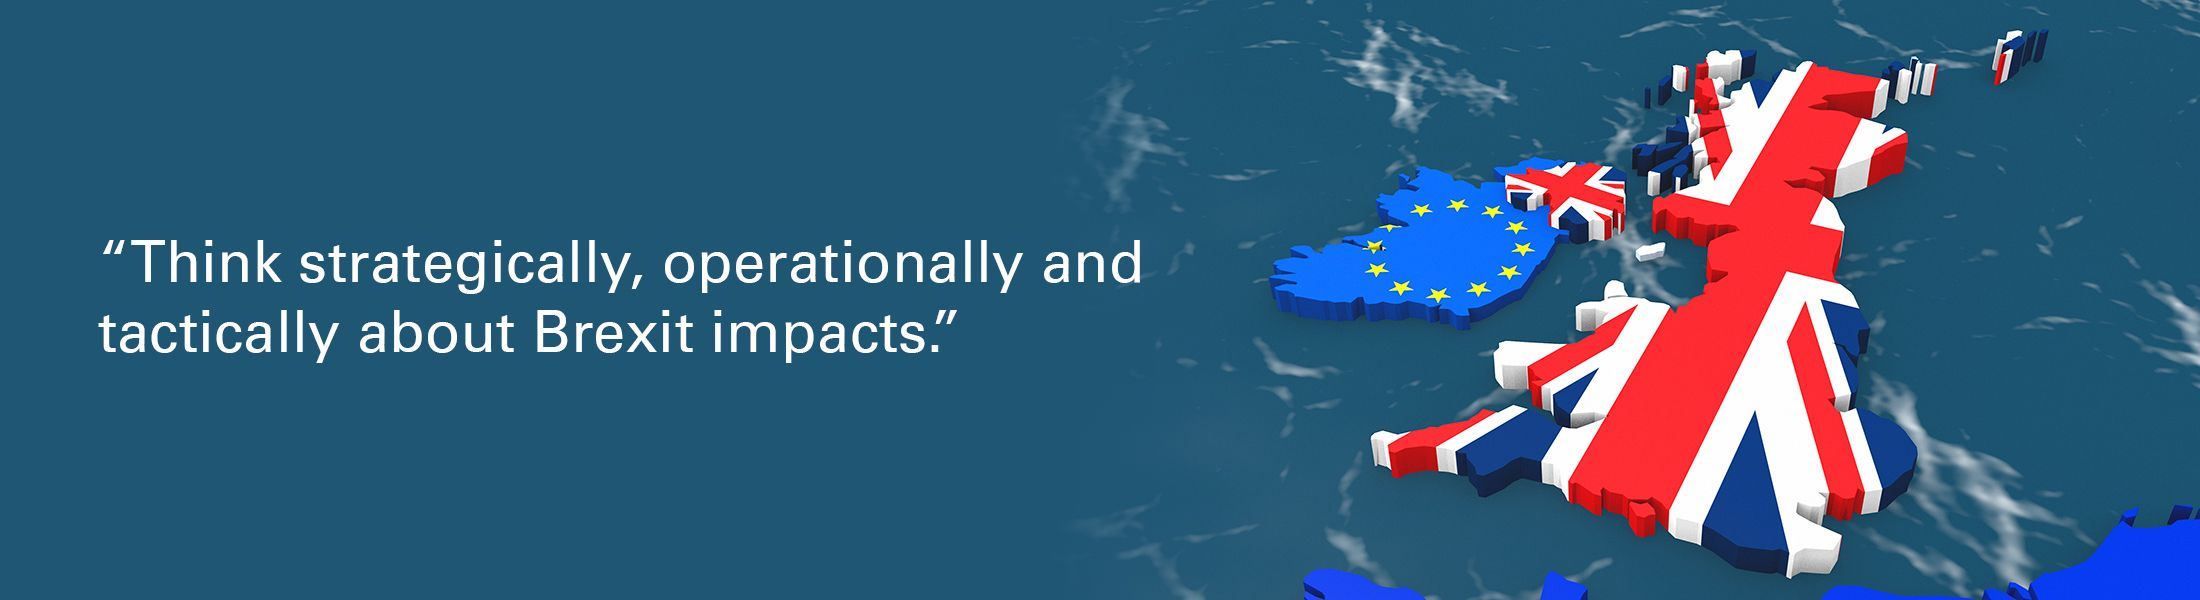 """Map of Ireland and Great Britain overlaid with quote """"Think strategically, operationally and tactically about Brexit impacts"""""""